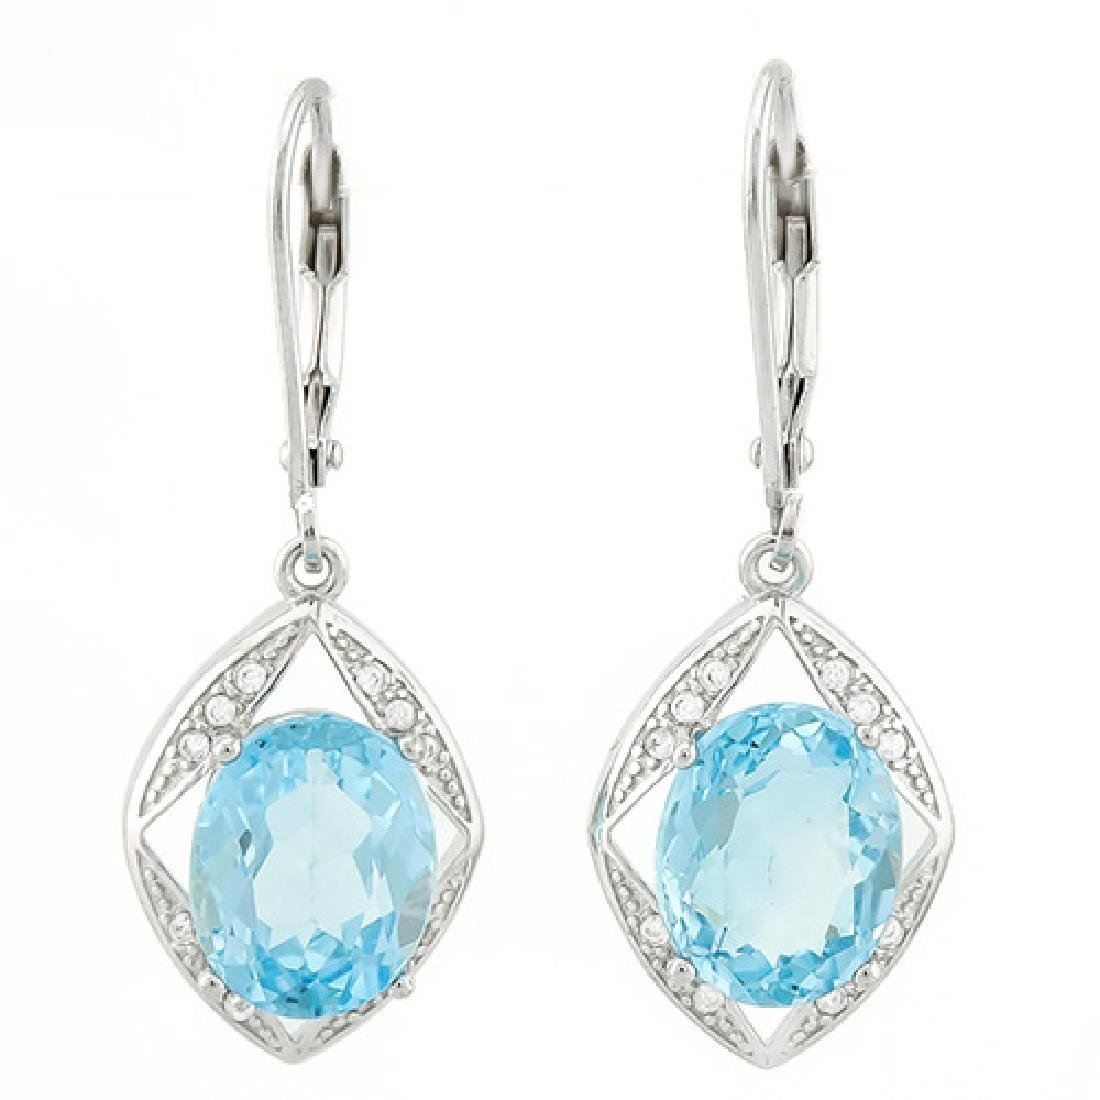 SMASHING 6CT SKY BLUE TOPAZ STERLING DANGLE ERGS